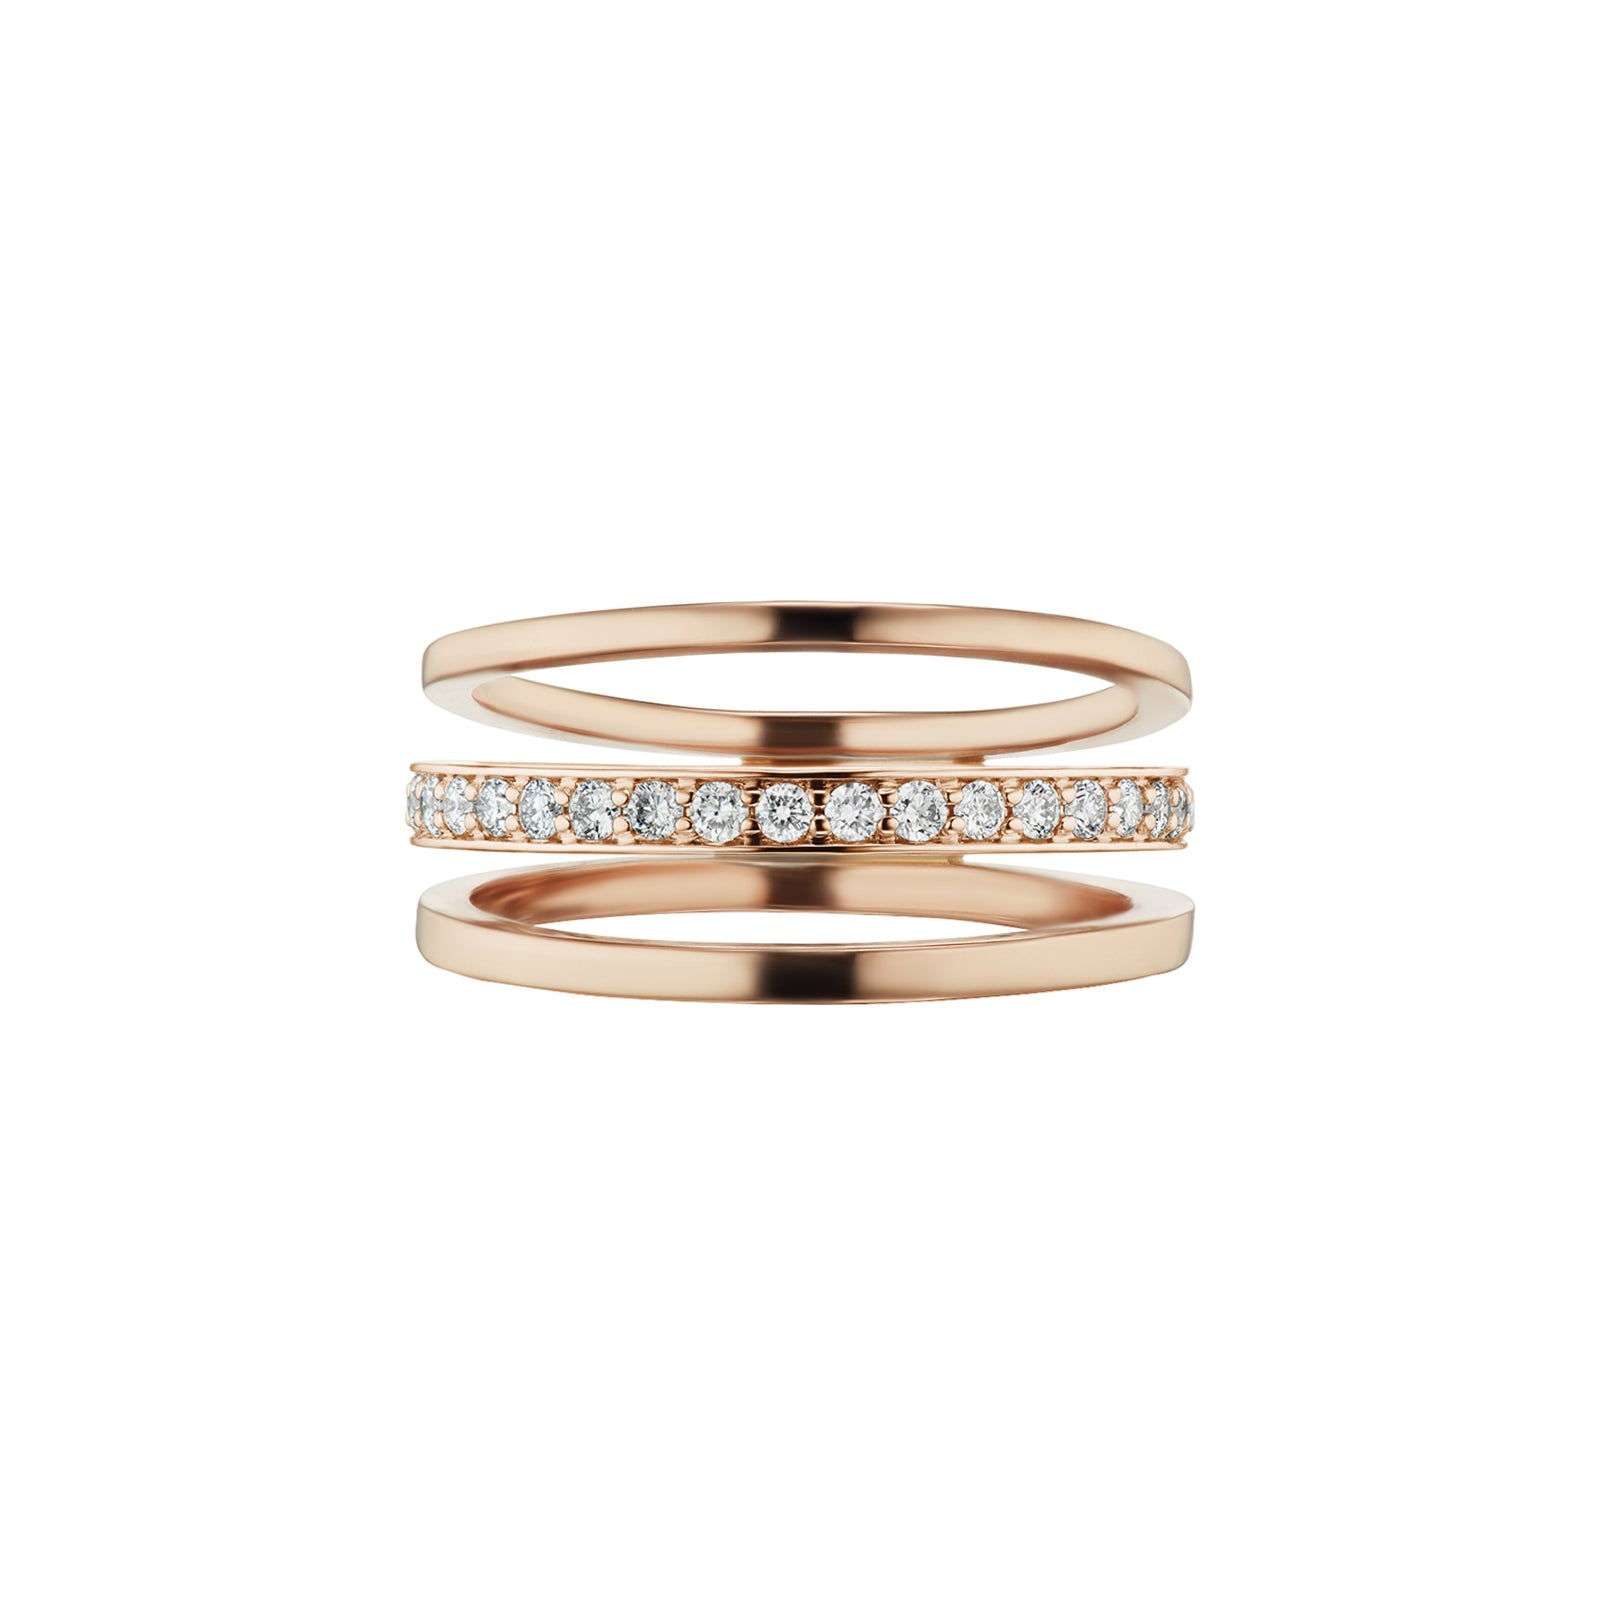 al.tru.ist Espionne Ring III - Rose Gold - Rings - Broken English Jewelry